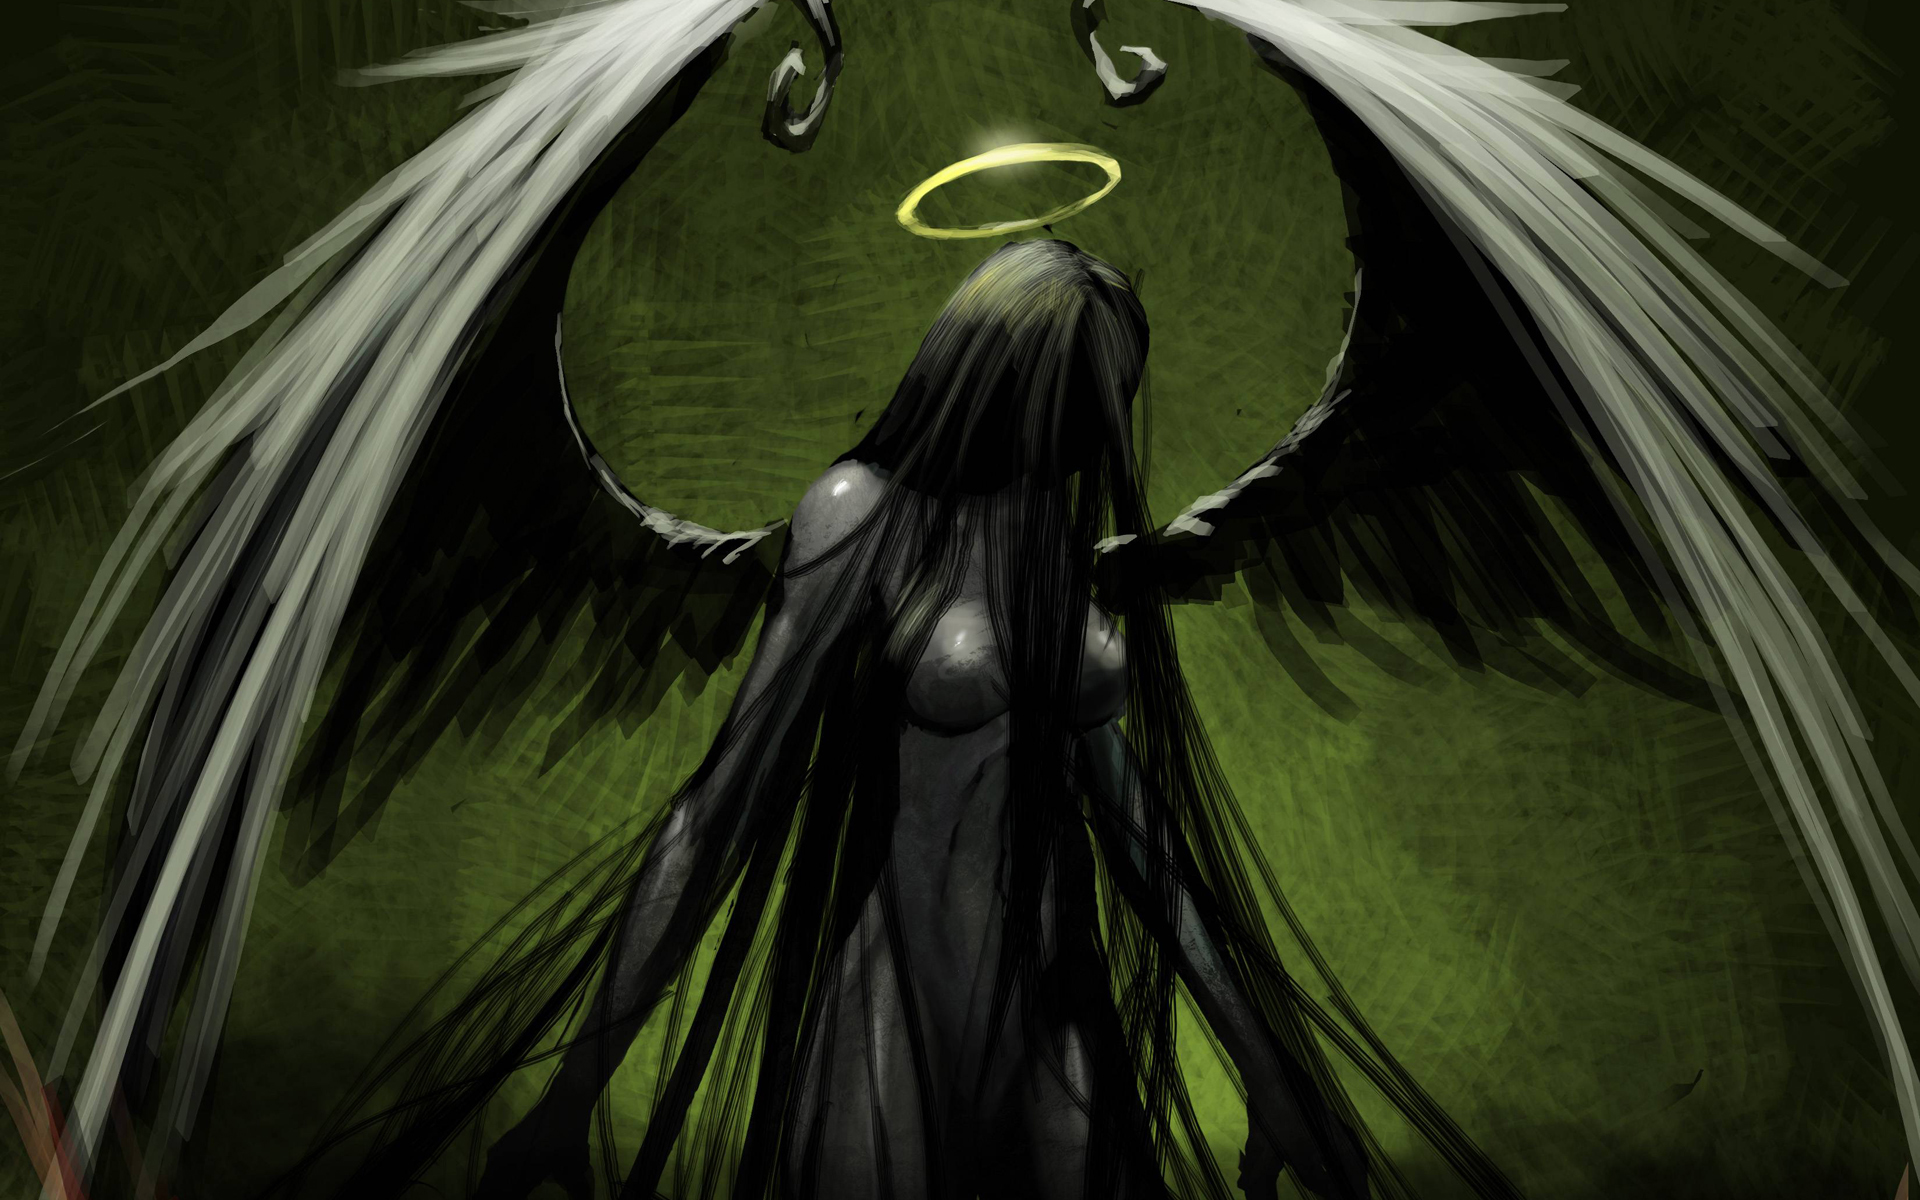 Drawn scythe gothic Wallpaper Demon Reaper Angel Grim